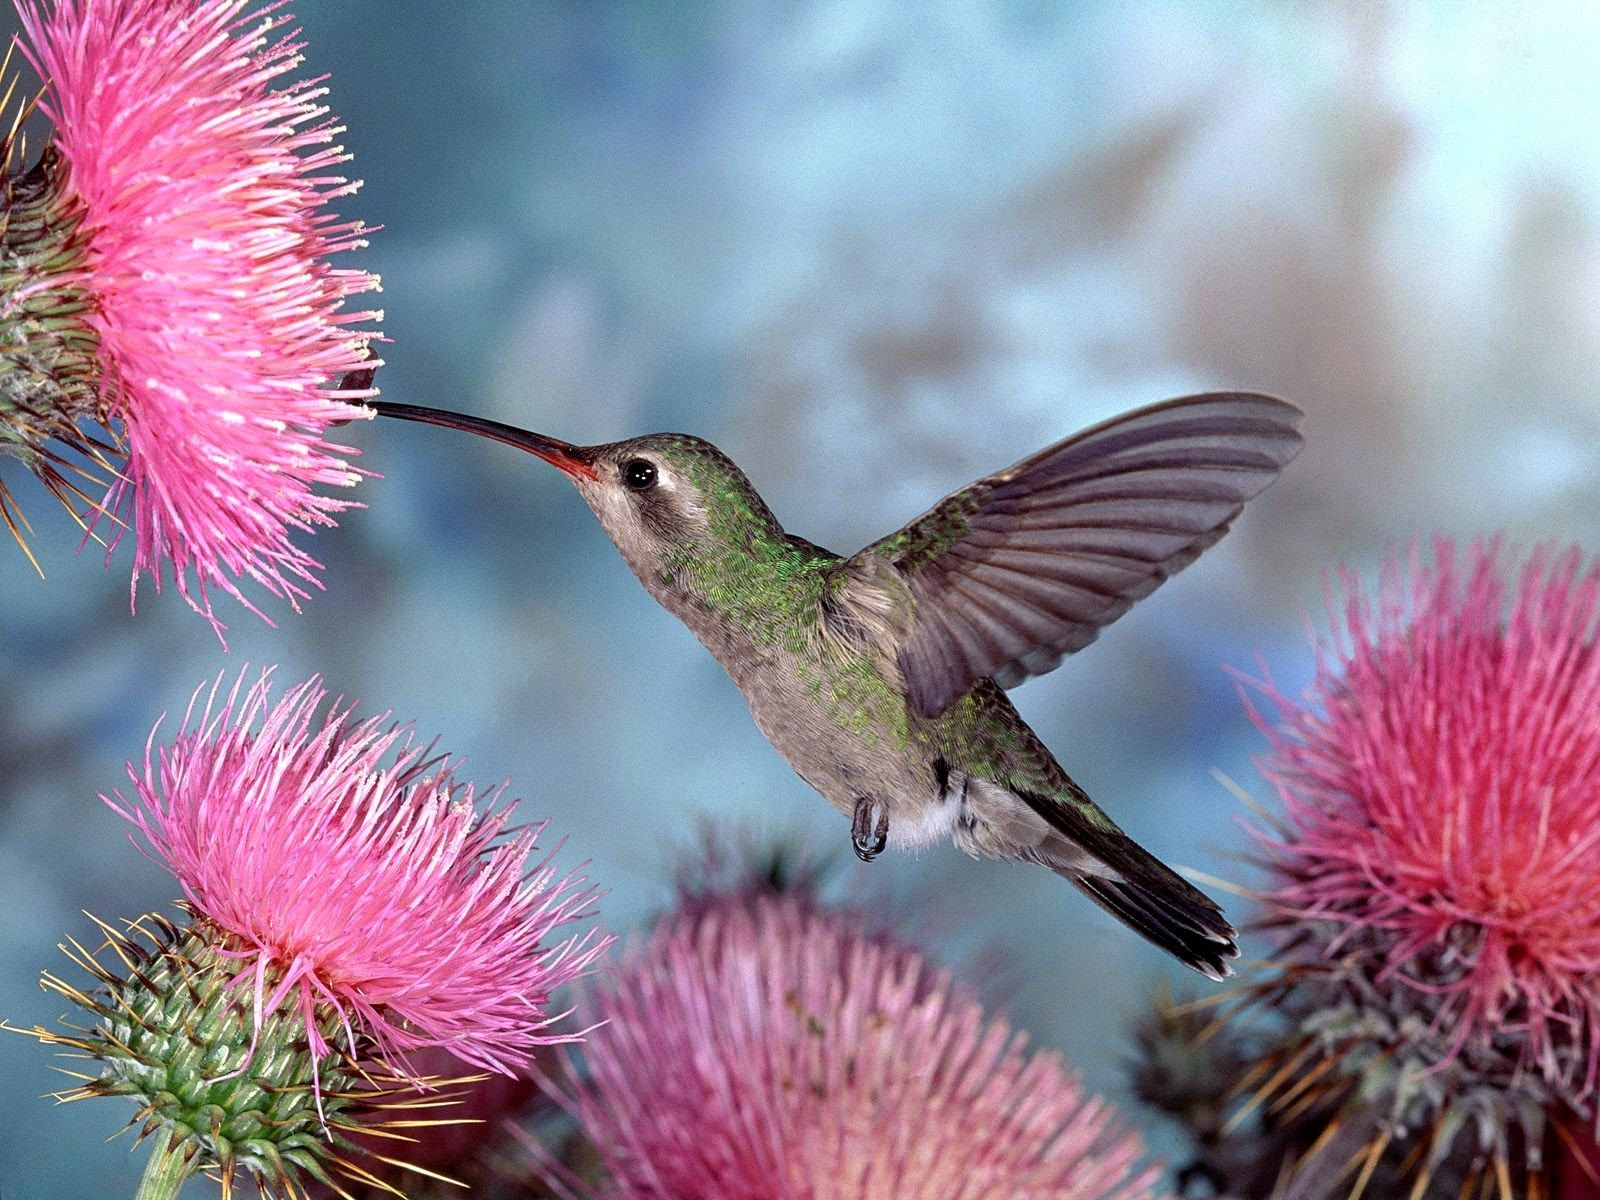 Nature Wallpaper Hd For Mobile Free Download 56 Pictures Hummingbird Wallpaper Bird Wallpaper Hummingbird Flowers